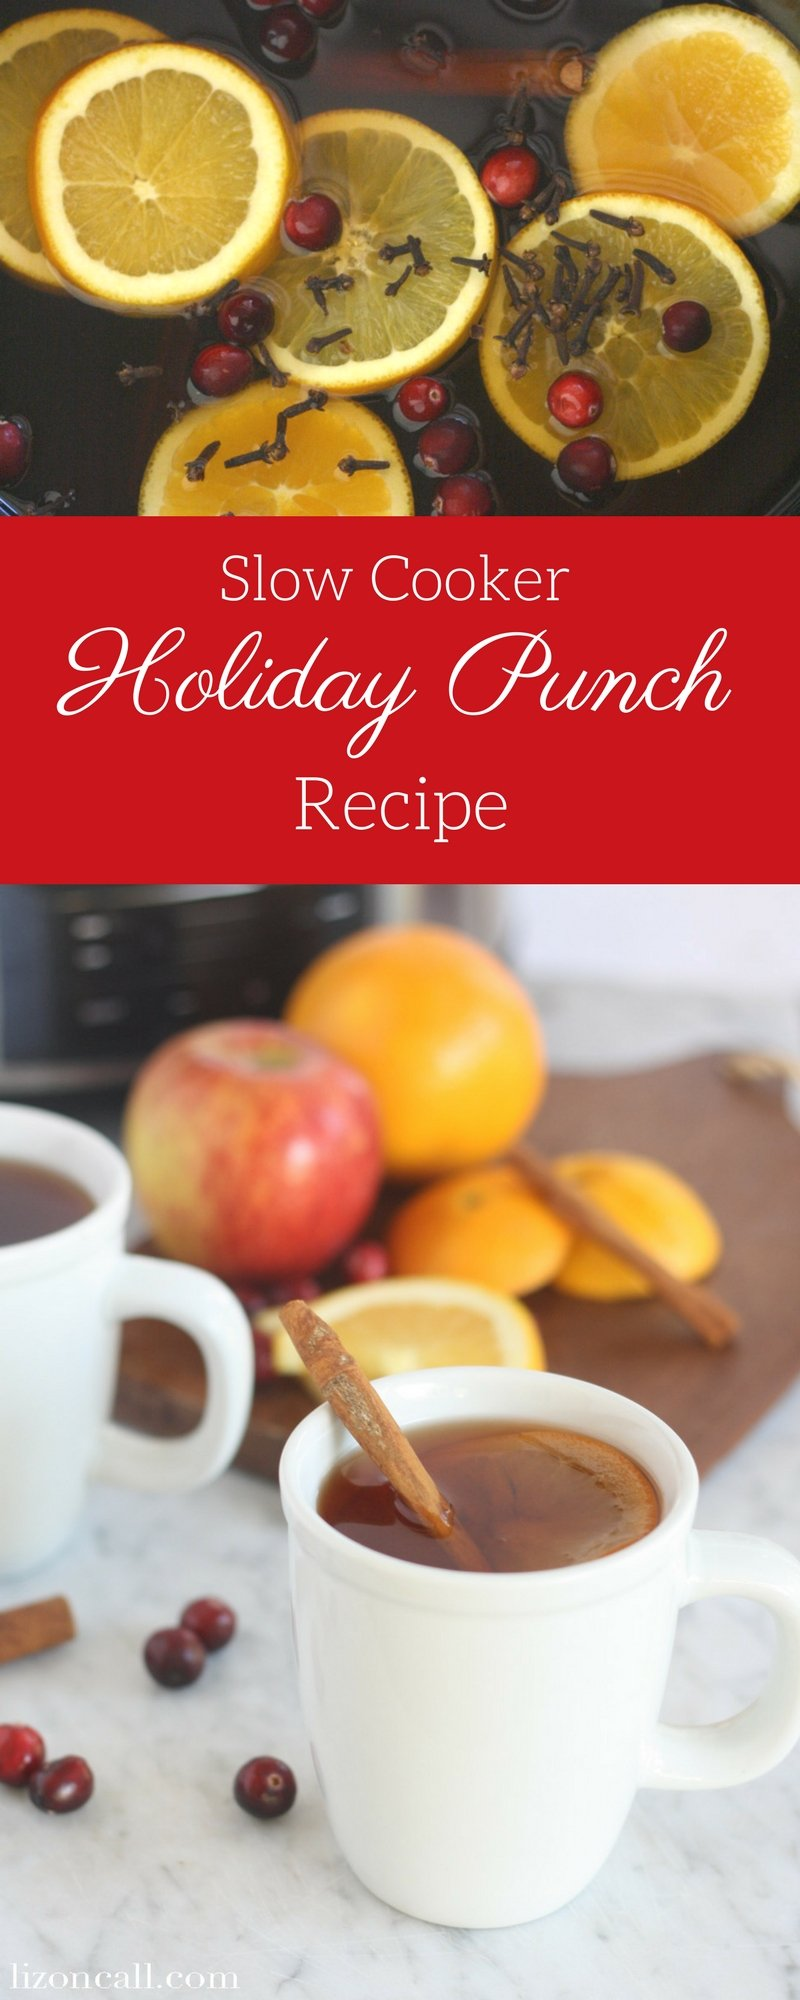 long image with 2 pictures featuring ingredients and toppings for slow cooker holiday punch recipe